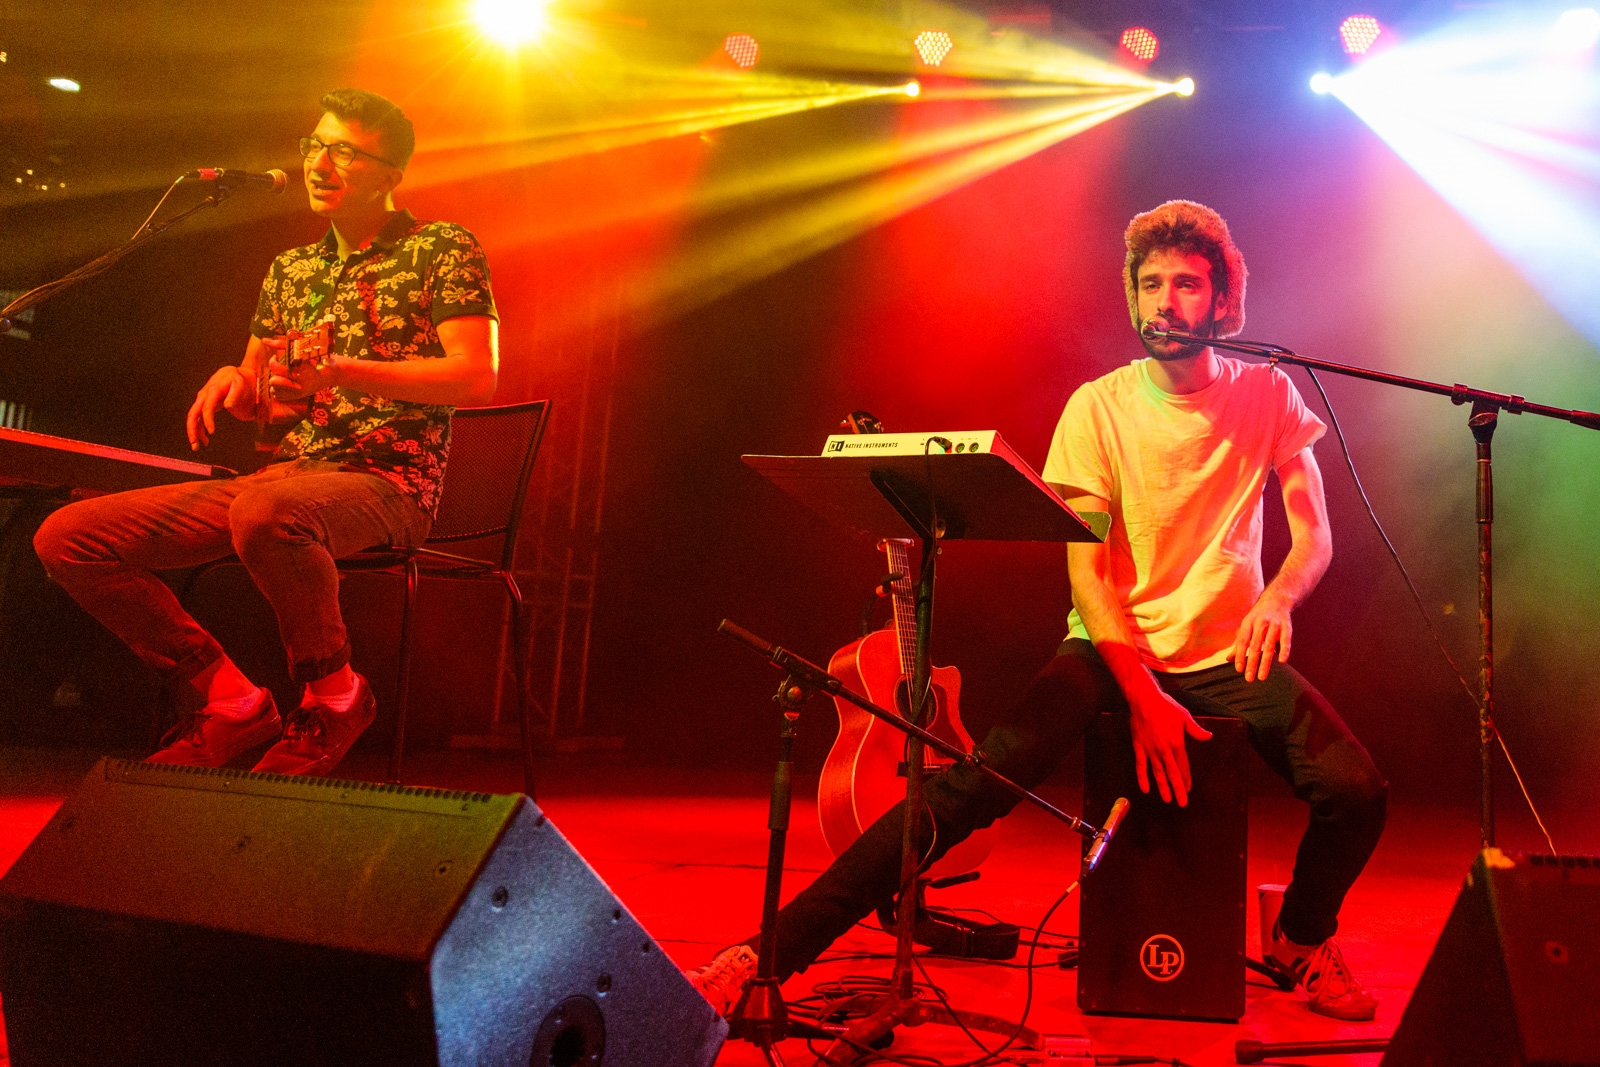 AJR was one of the major bands on the bill Sunday.